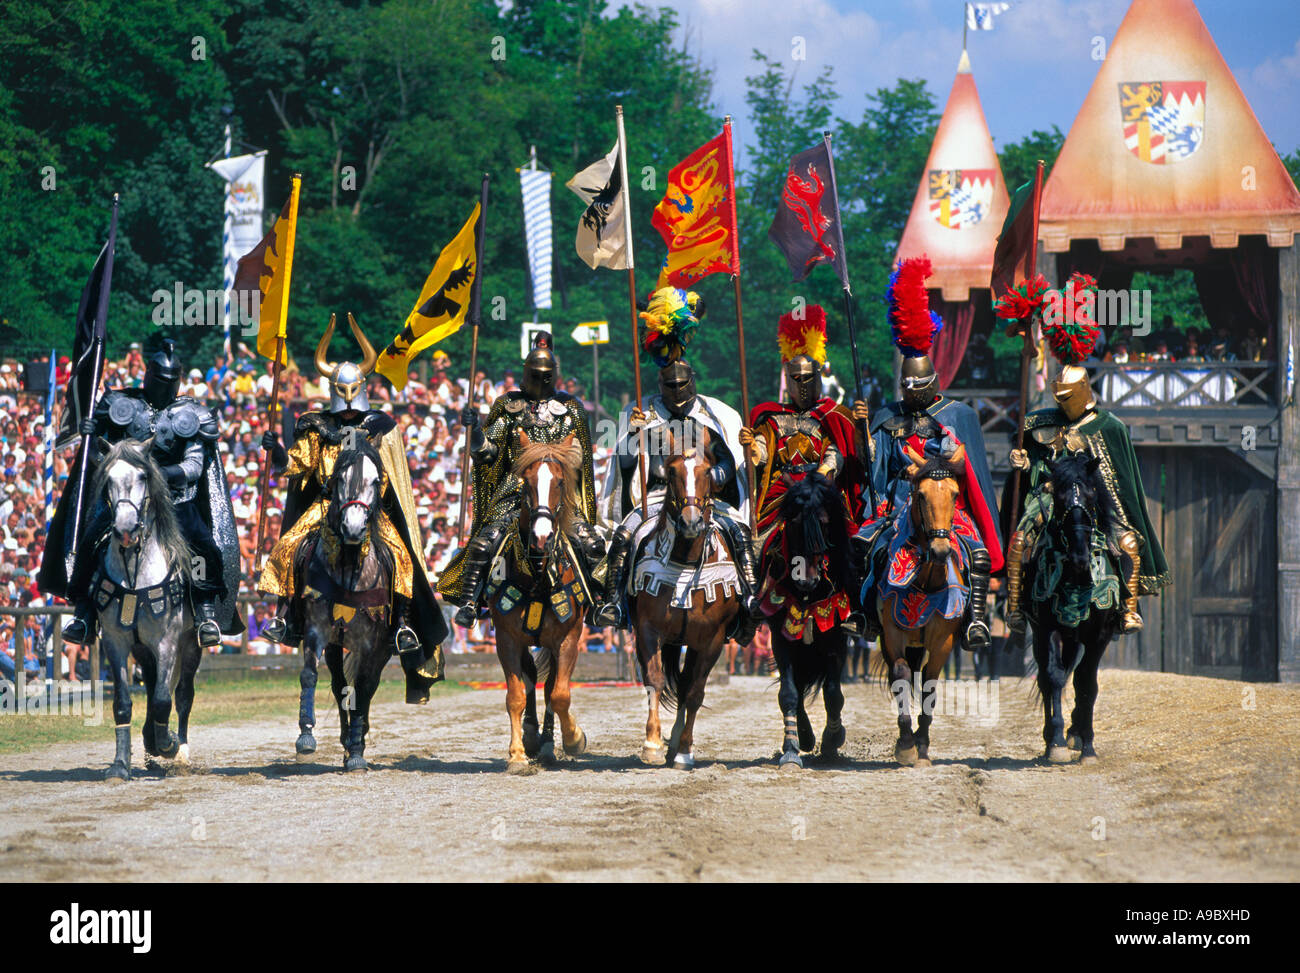 Knights on horse holding lance flag in tournament Medieval festival in Kaltenberg Bavaria Germany Stock Photo